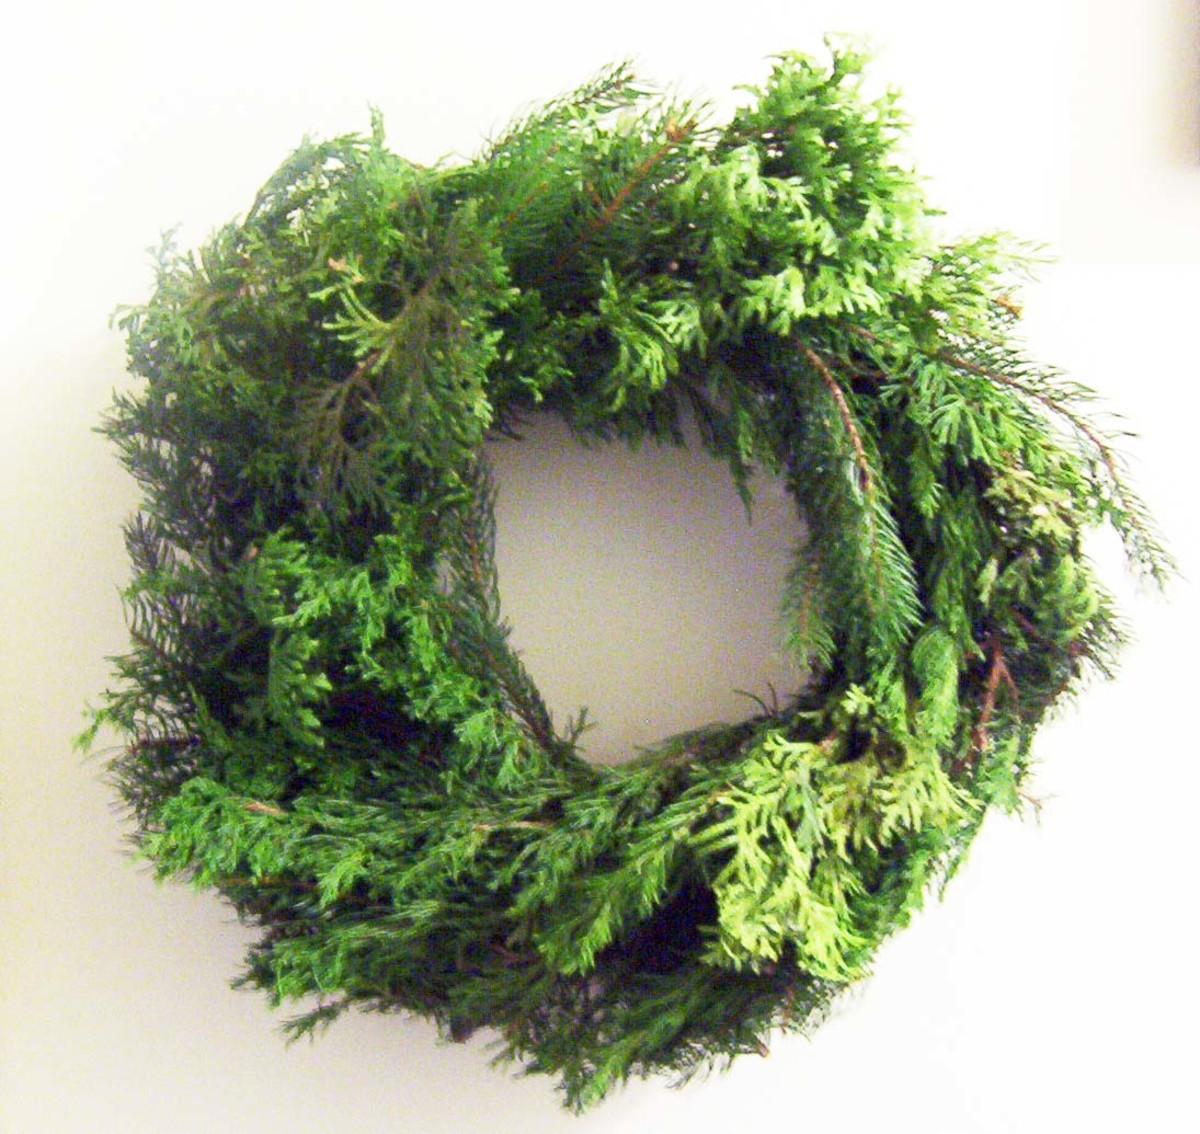 I like to leave my Christmas wreath undecorated